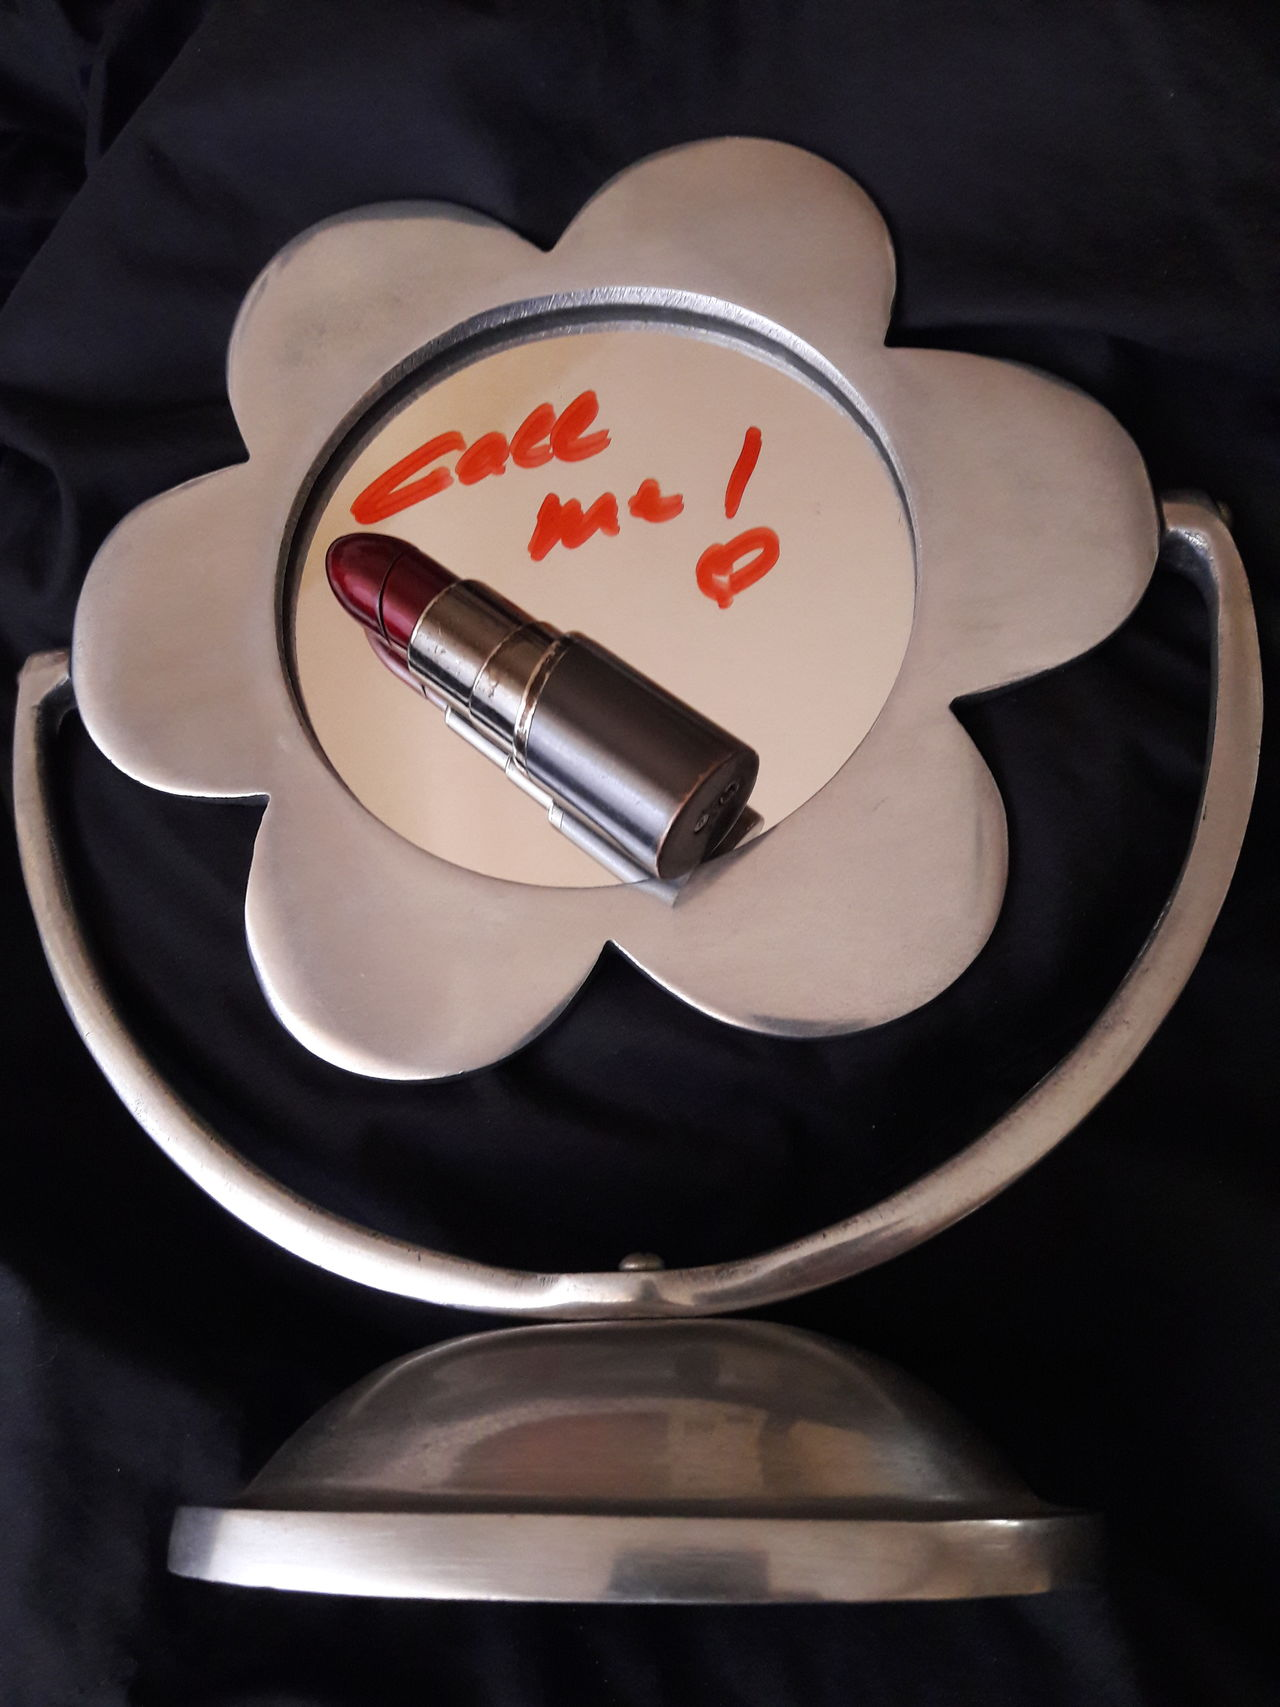 """Call Me"" Daisy Close Up Message Love Love Message Silver  Red Red And Silver Feelings Relationships Couple To Call To Phone Mirror Round Mirror Lipstick Communication Daisy Shapes No People Steel In Touch Keep In Touch  Black Background Conceptual social EyeEmNewHere"